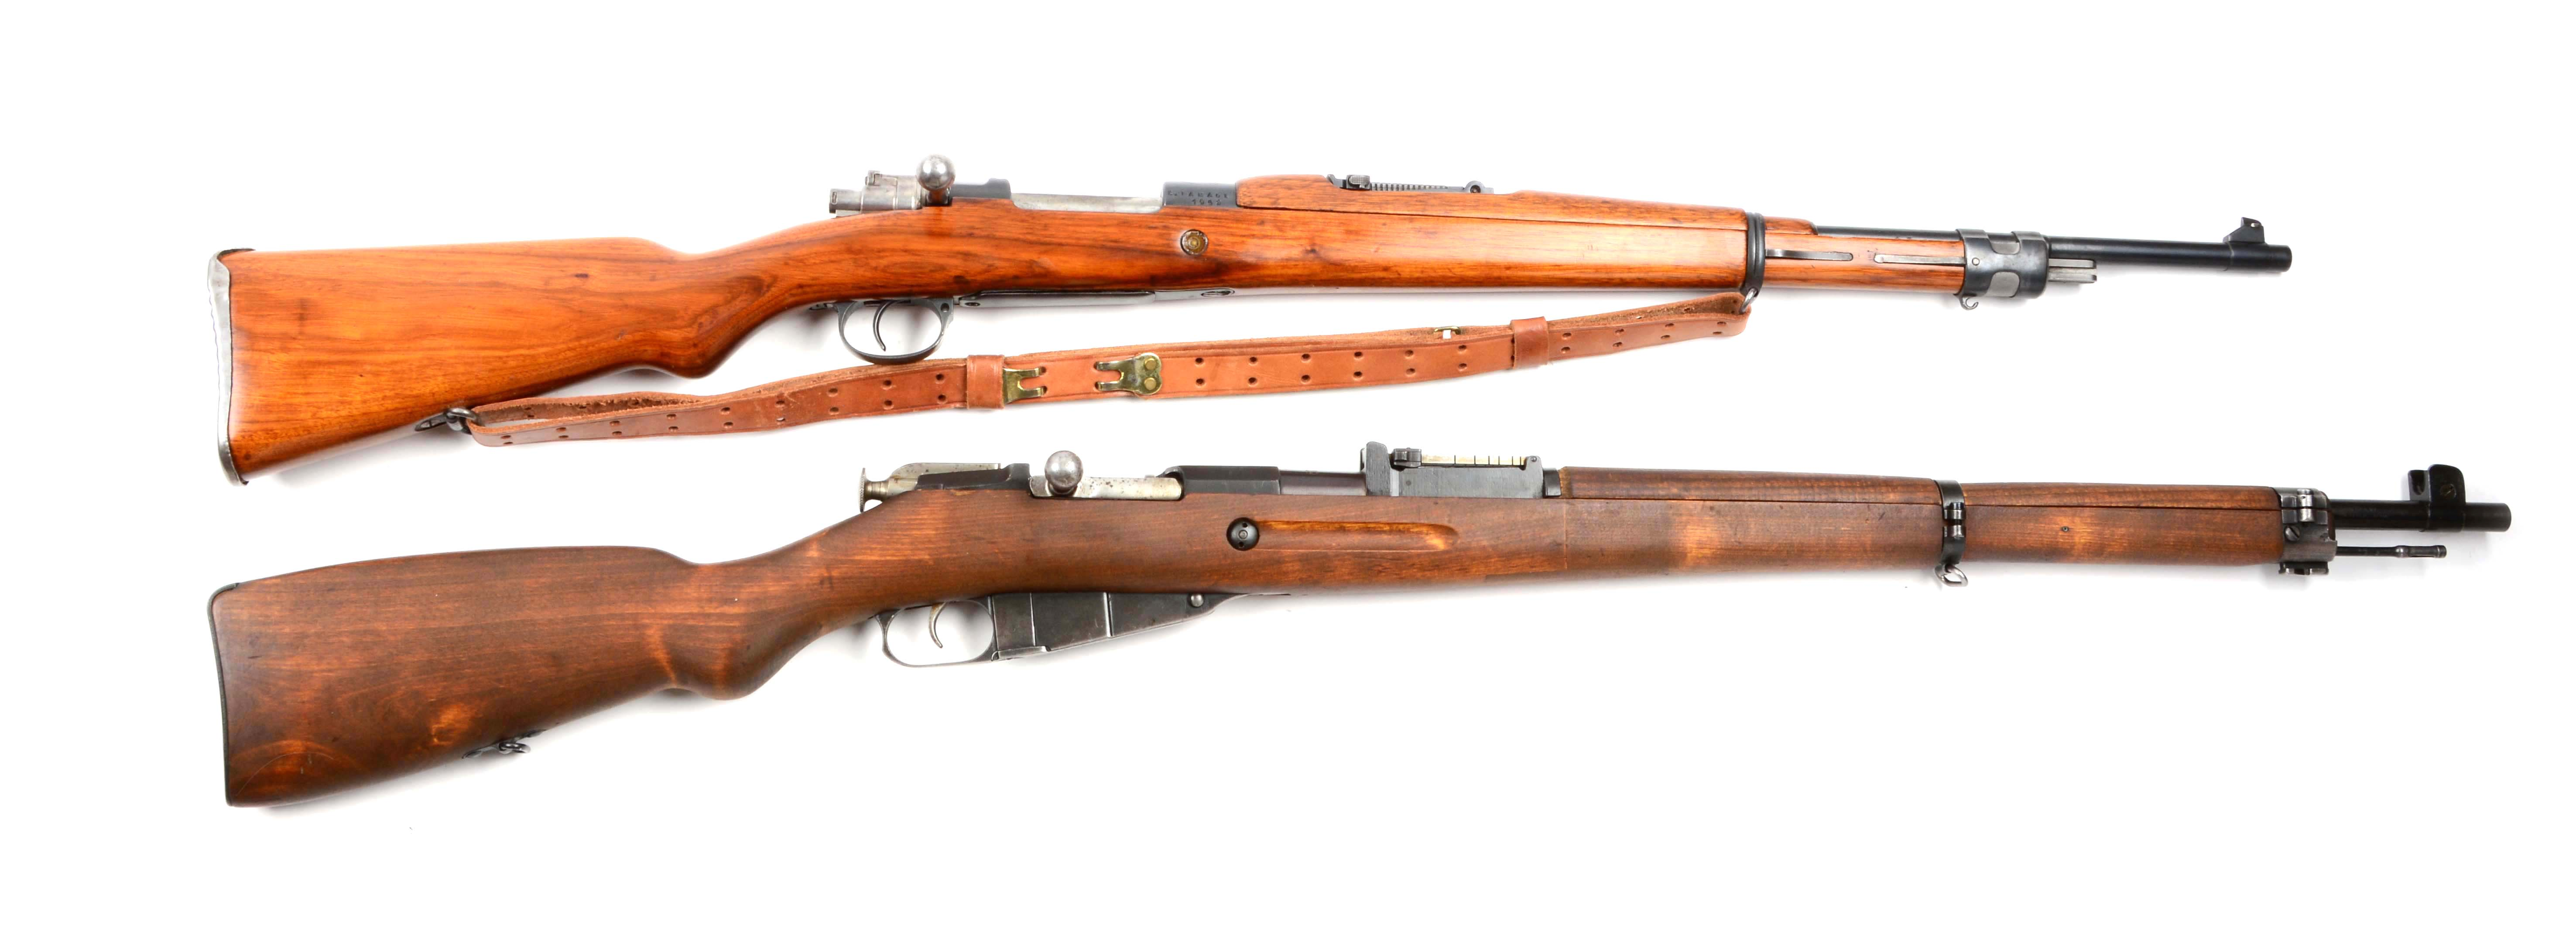 Auktion - Firearms, Militaria, Sporting & Fishing am 09 06 2010